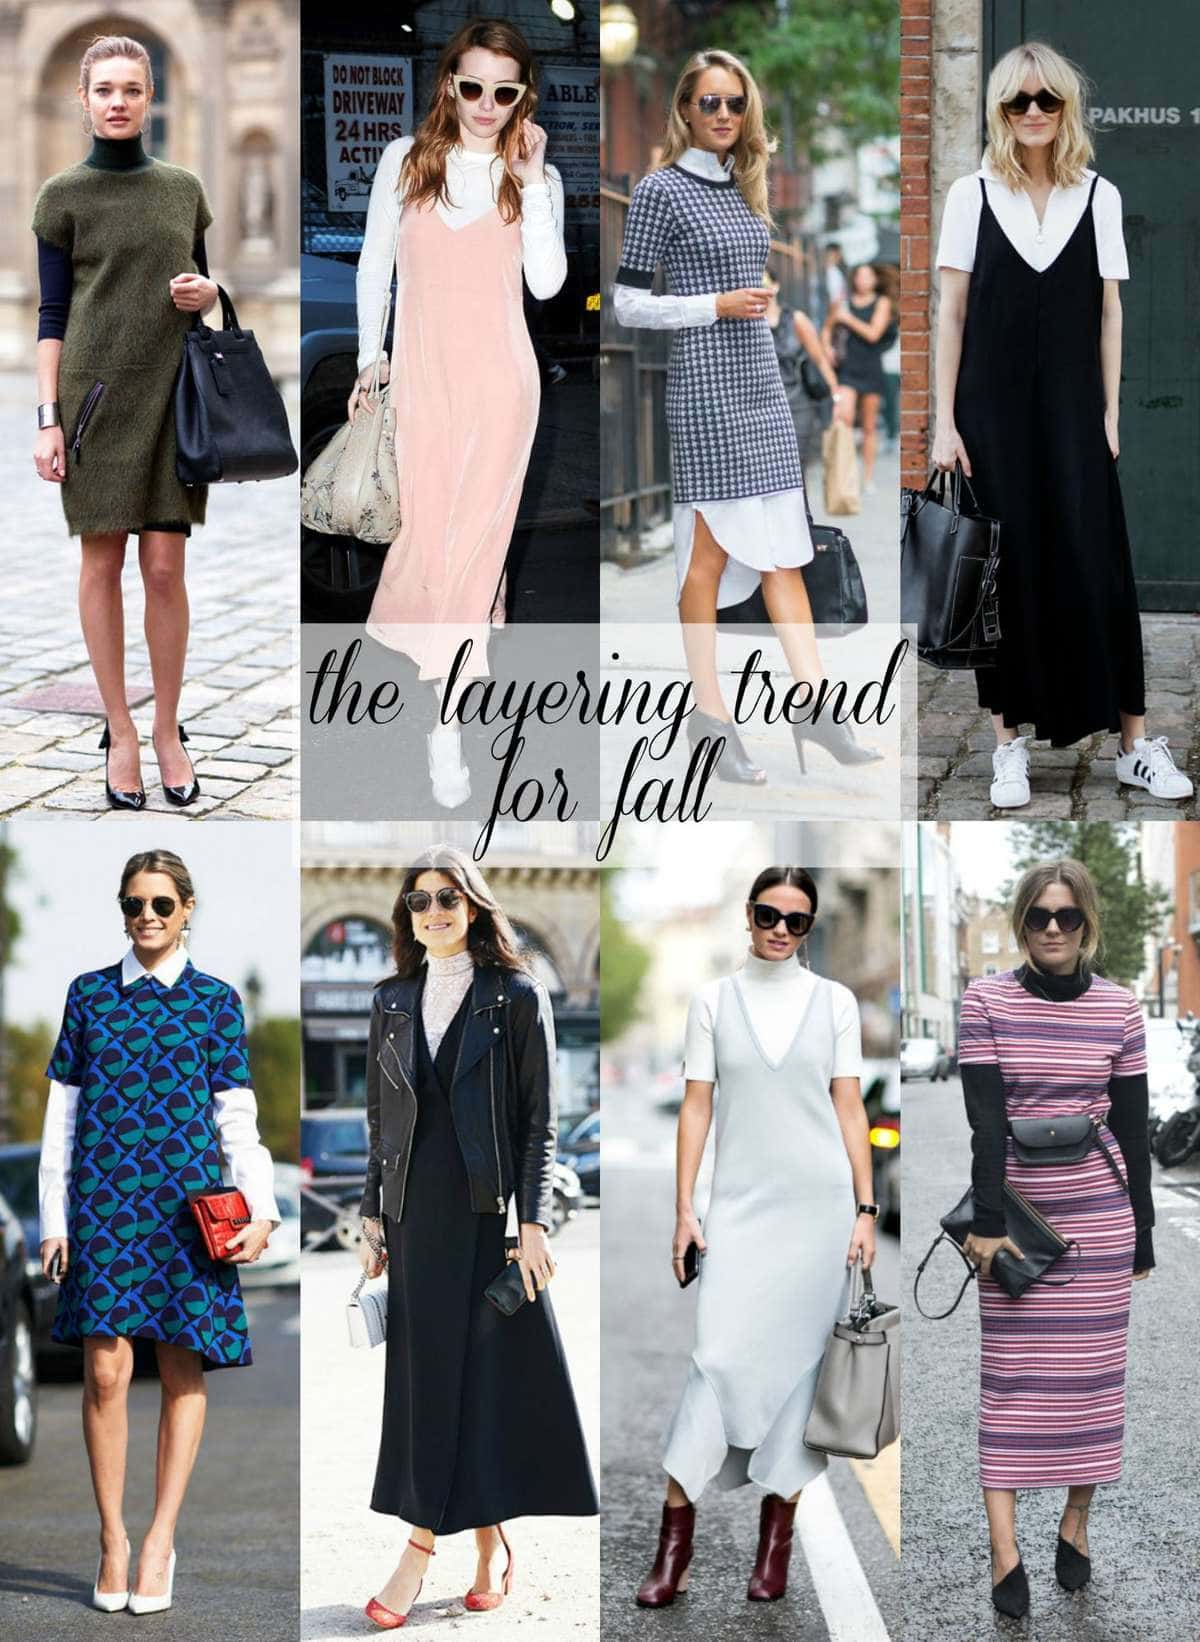 layering-trend-for-fall-2016-turtleneck-and-shirt-under-dresses-wardrobe-oxygen